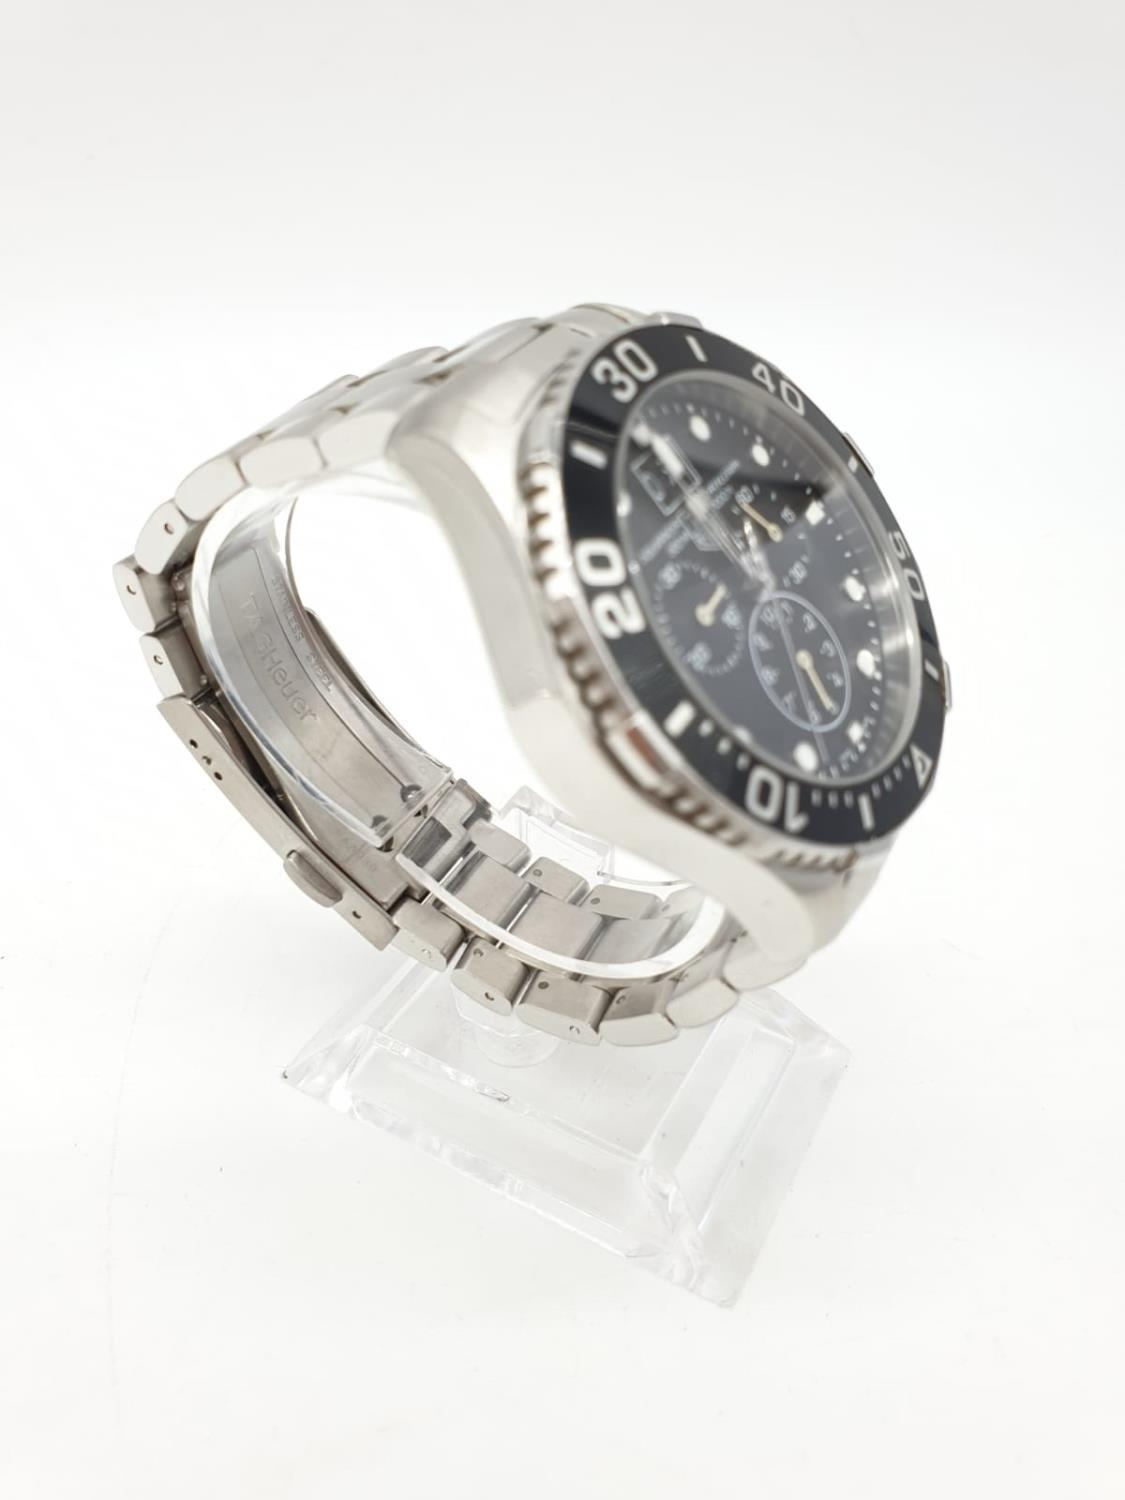 Tag Heuer gents chronograph Aquaracer watch, black face twisted bezel and steel strap, 44mm case - Image 8 of 14